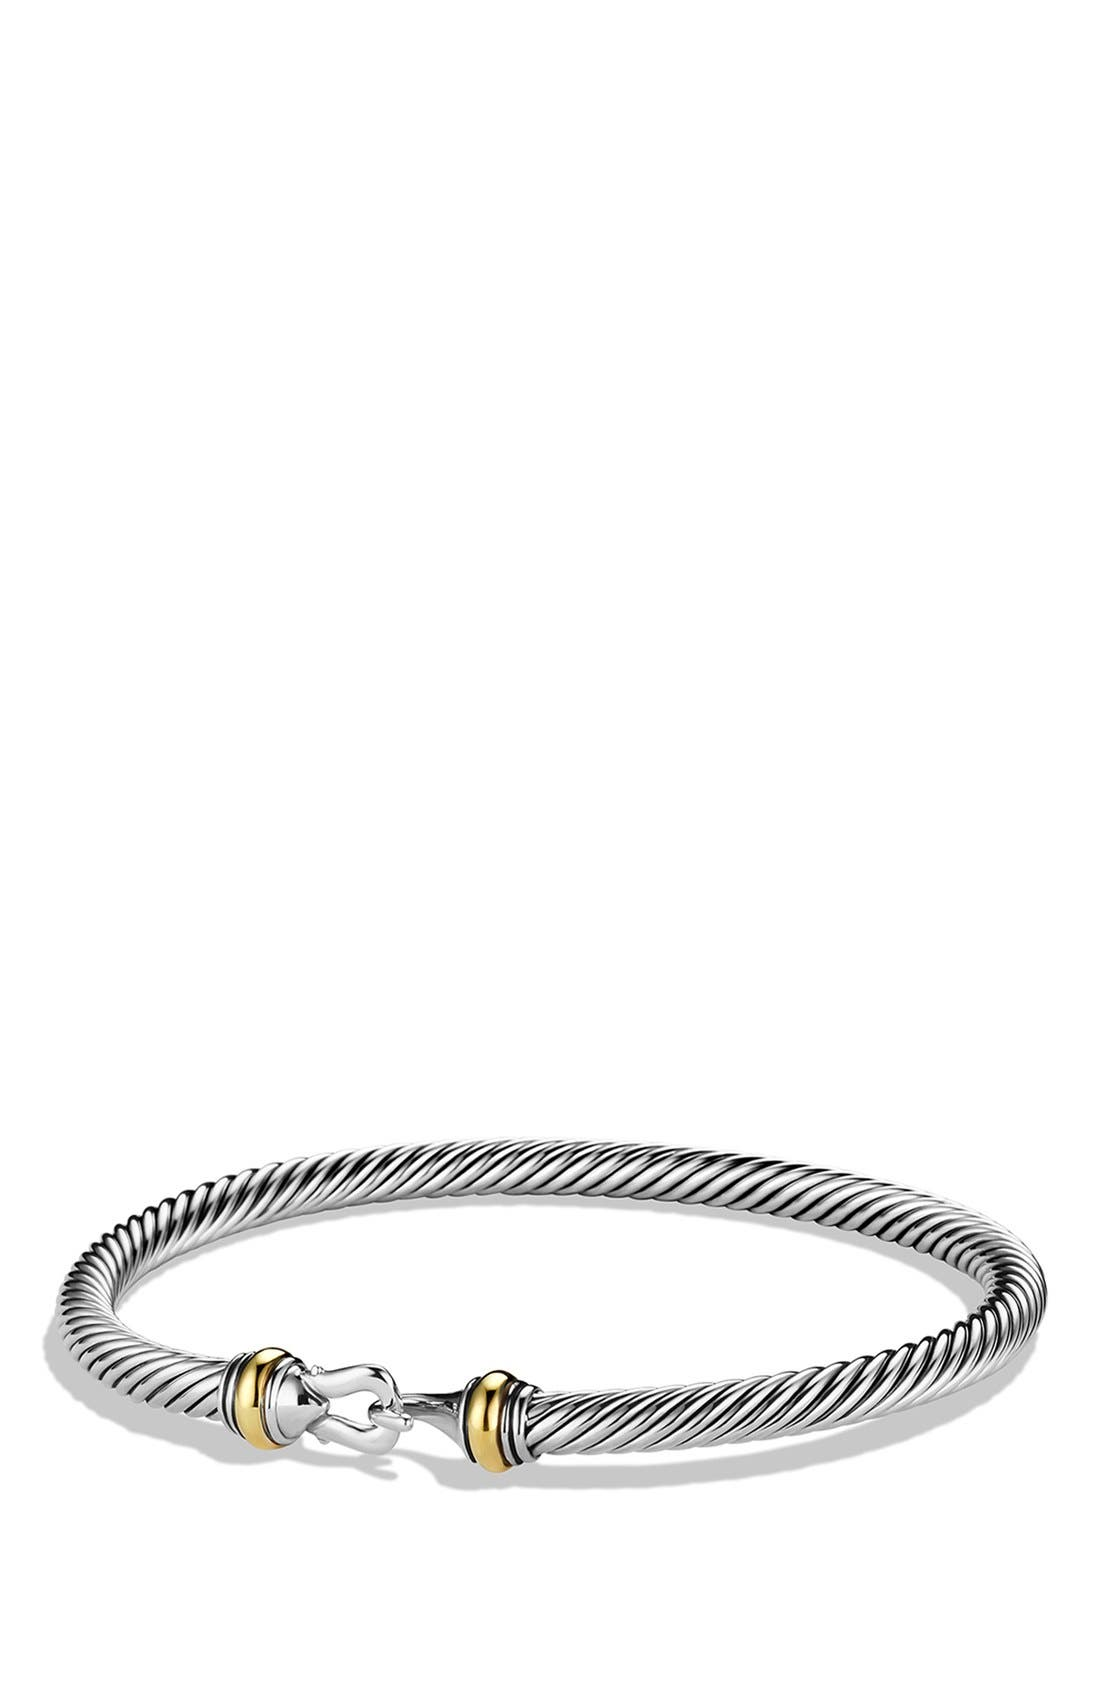 Main Image - David Yurman 'Buckle Cable' Bracelet with Gold